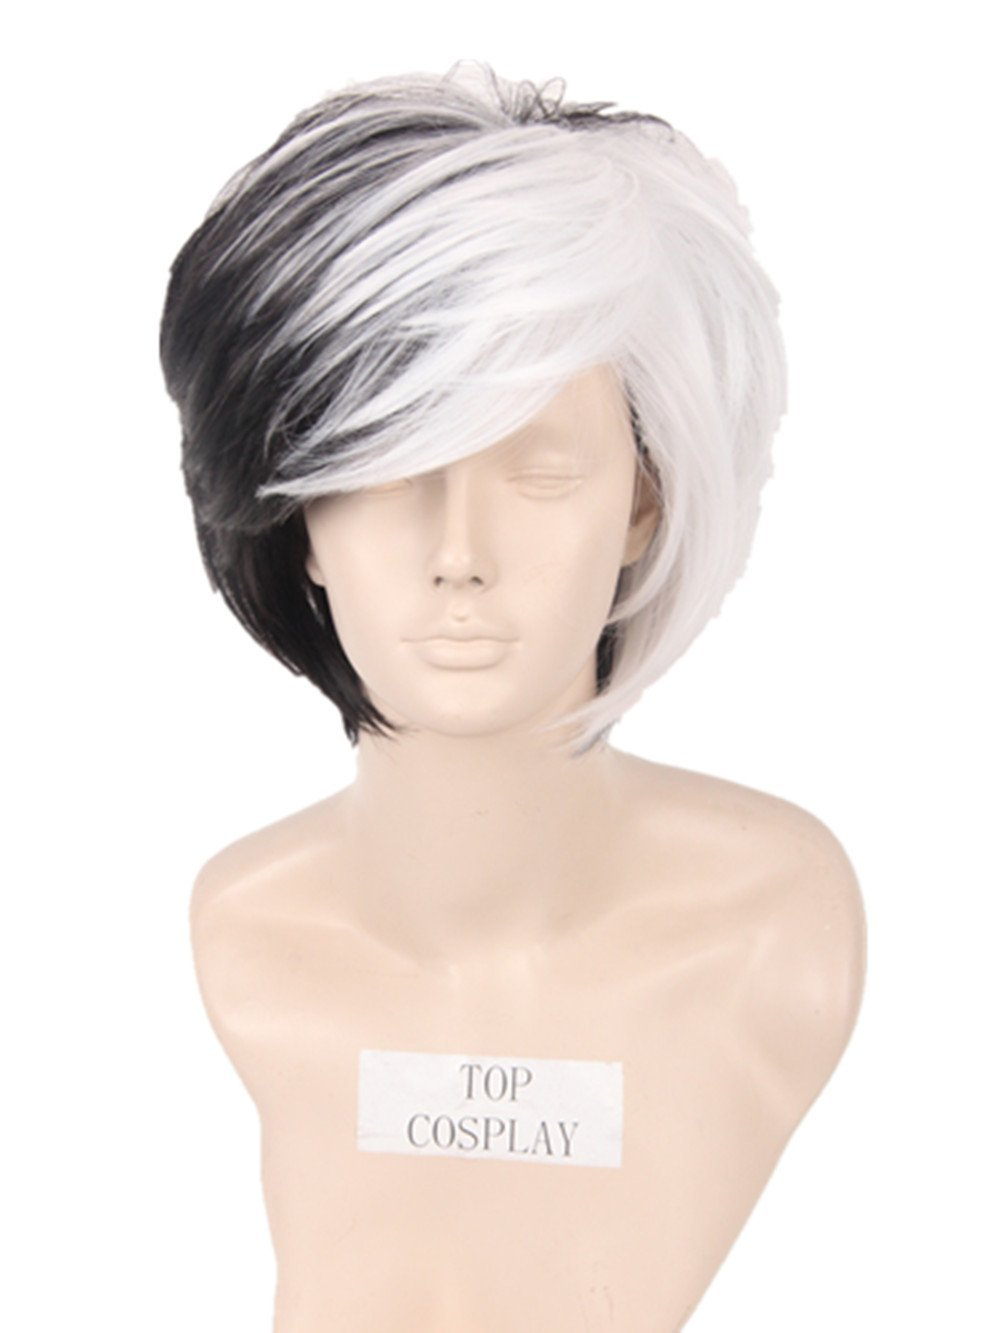 Deluxe Cruella Deville Women's Short Length Cosplay Voluminous Bob Wig Black & White Heat Resistant Fiber by Topcosplay